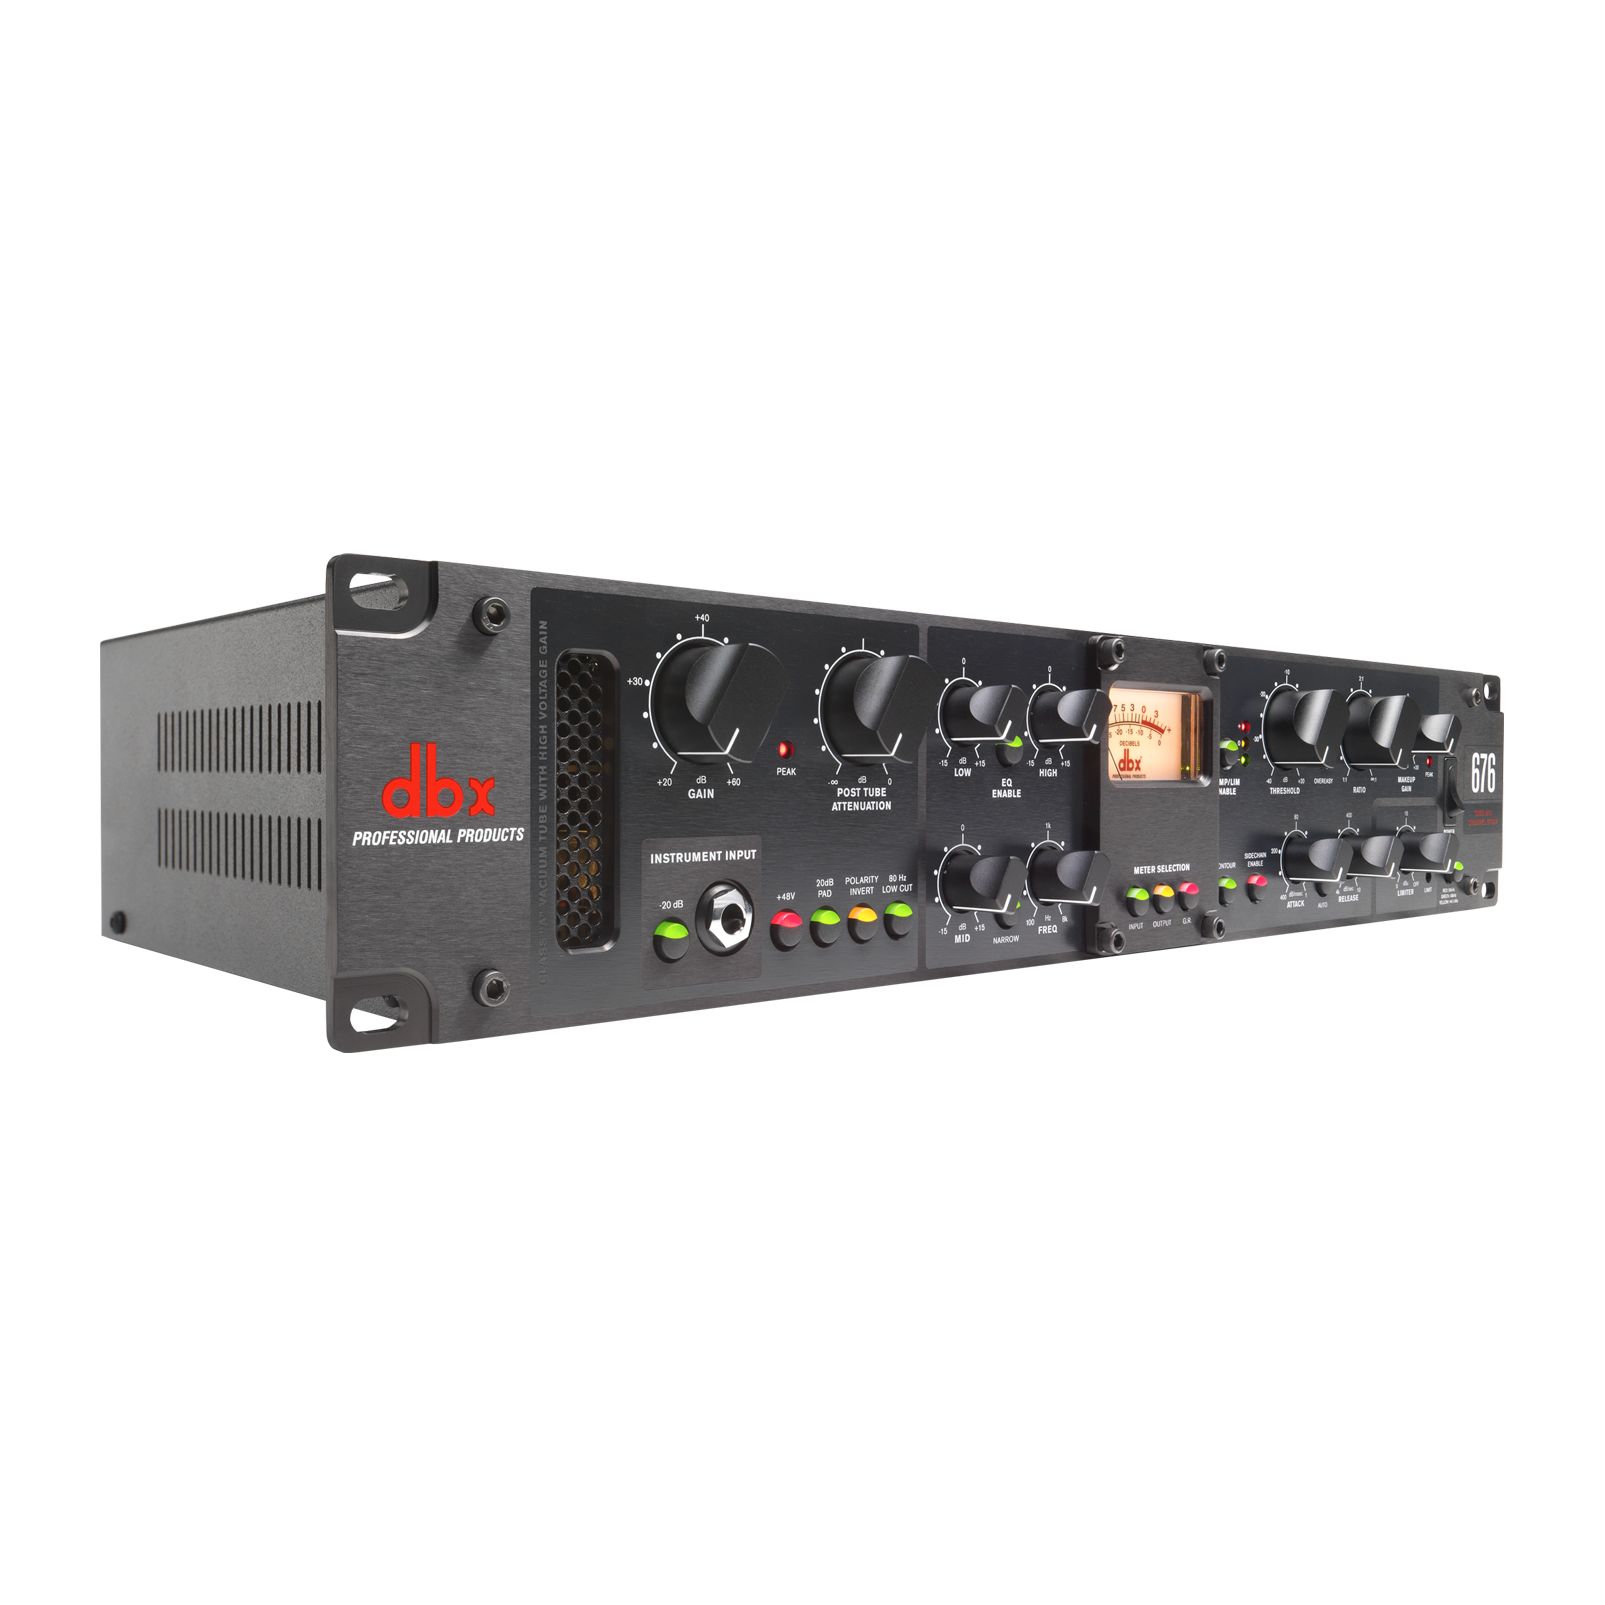 676 - Black - Tube Microphone Preamp Channel Strip - Detailshot 1